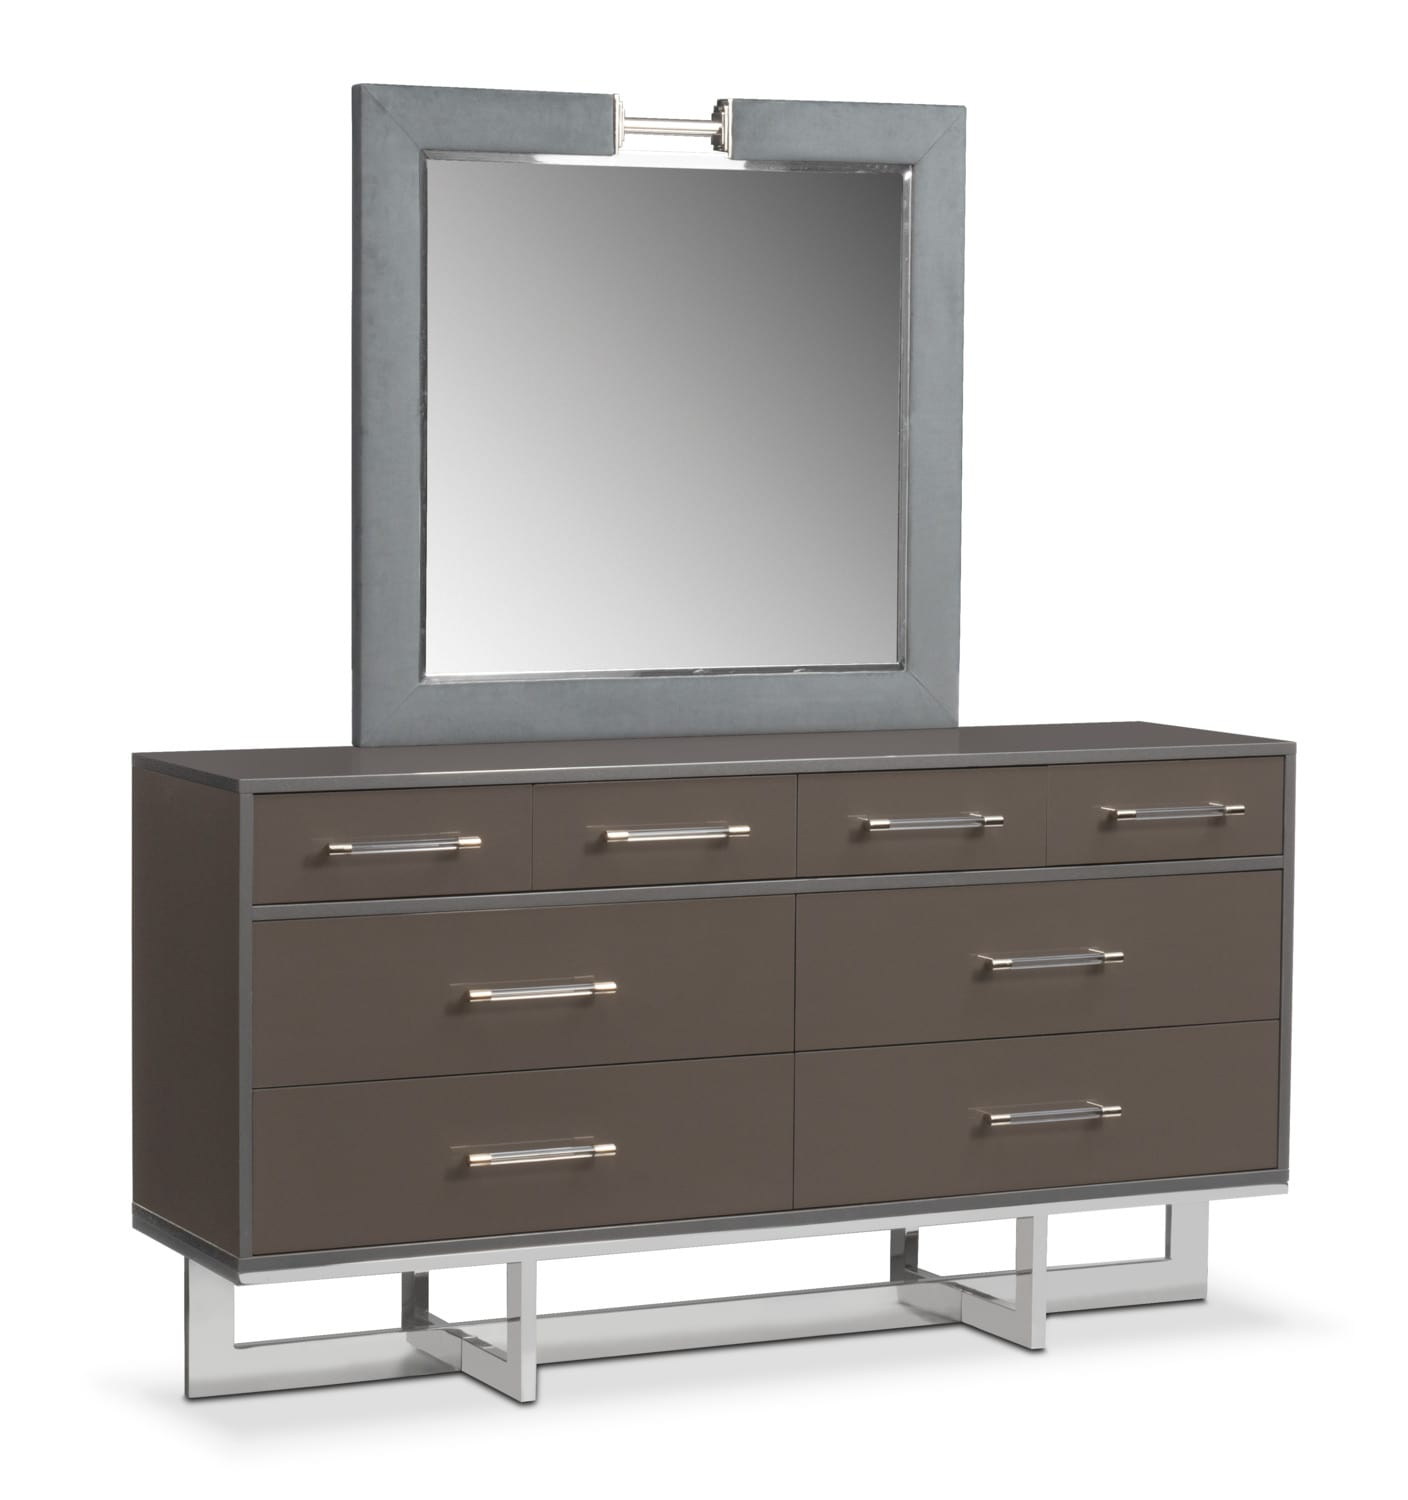 Bedroom Furniture - Sonata Dresser and Mirror - Gray